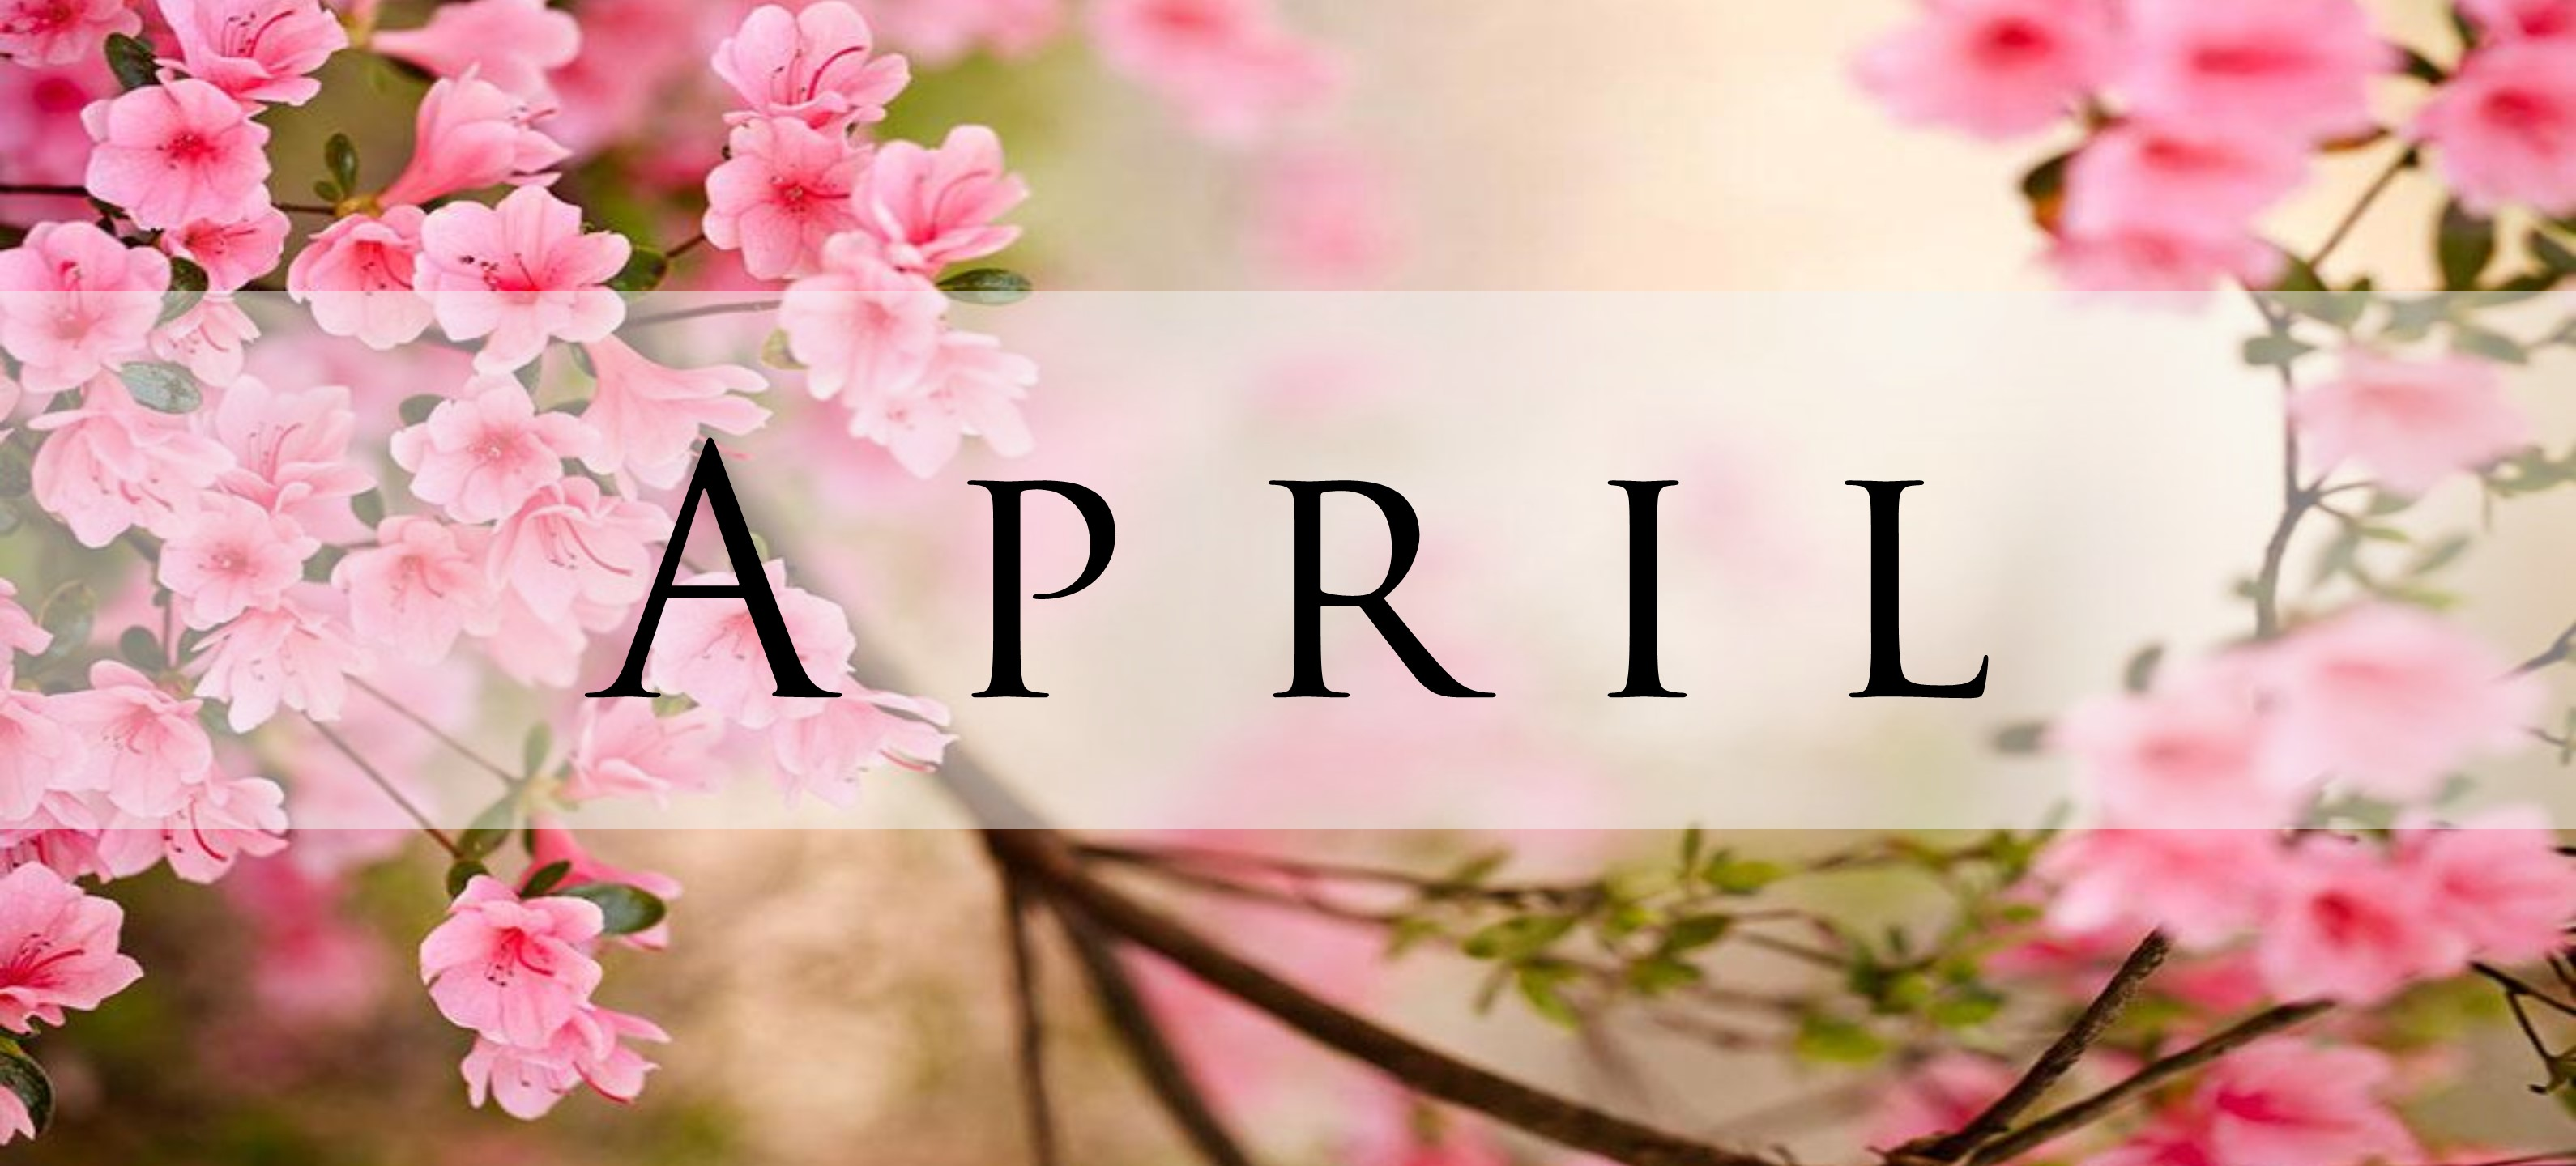 National Holidays April 2019 pink blossoms with the word April across the cover photo